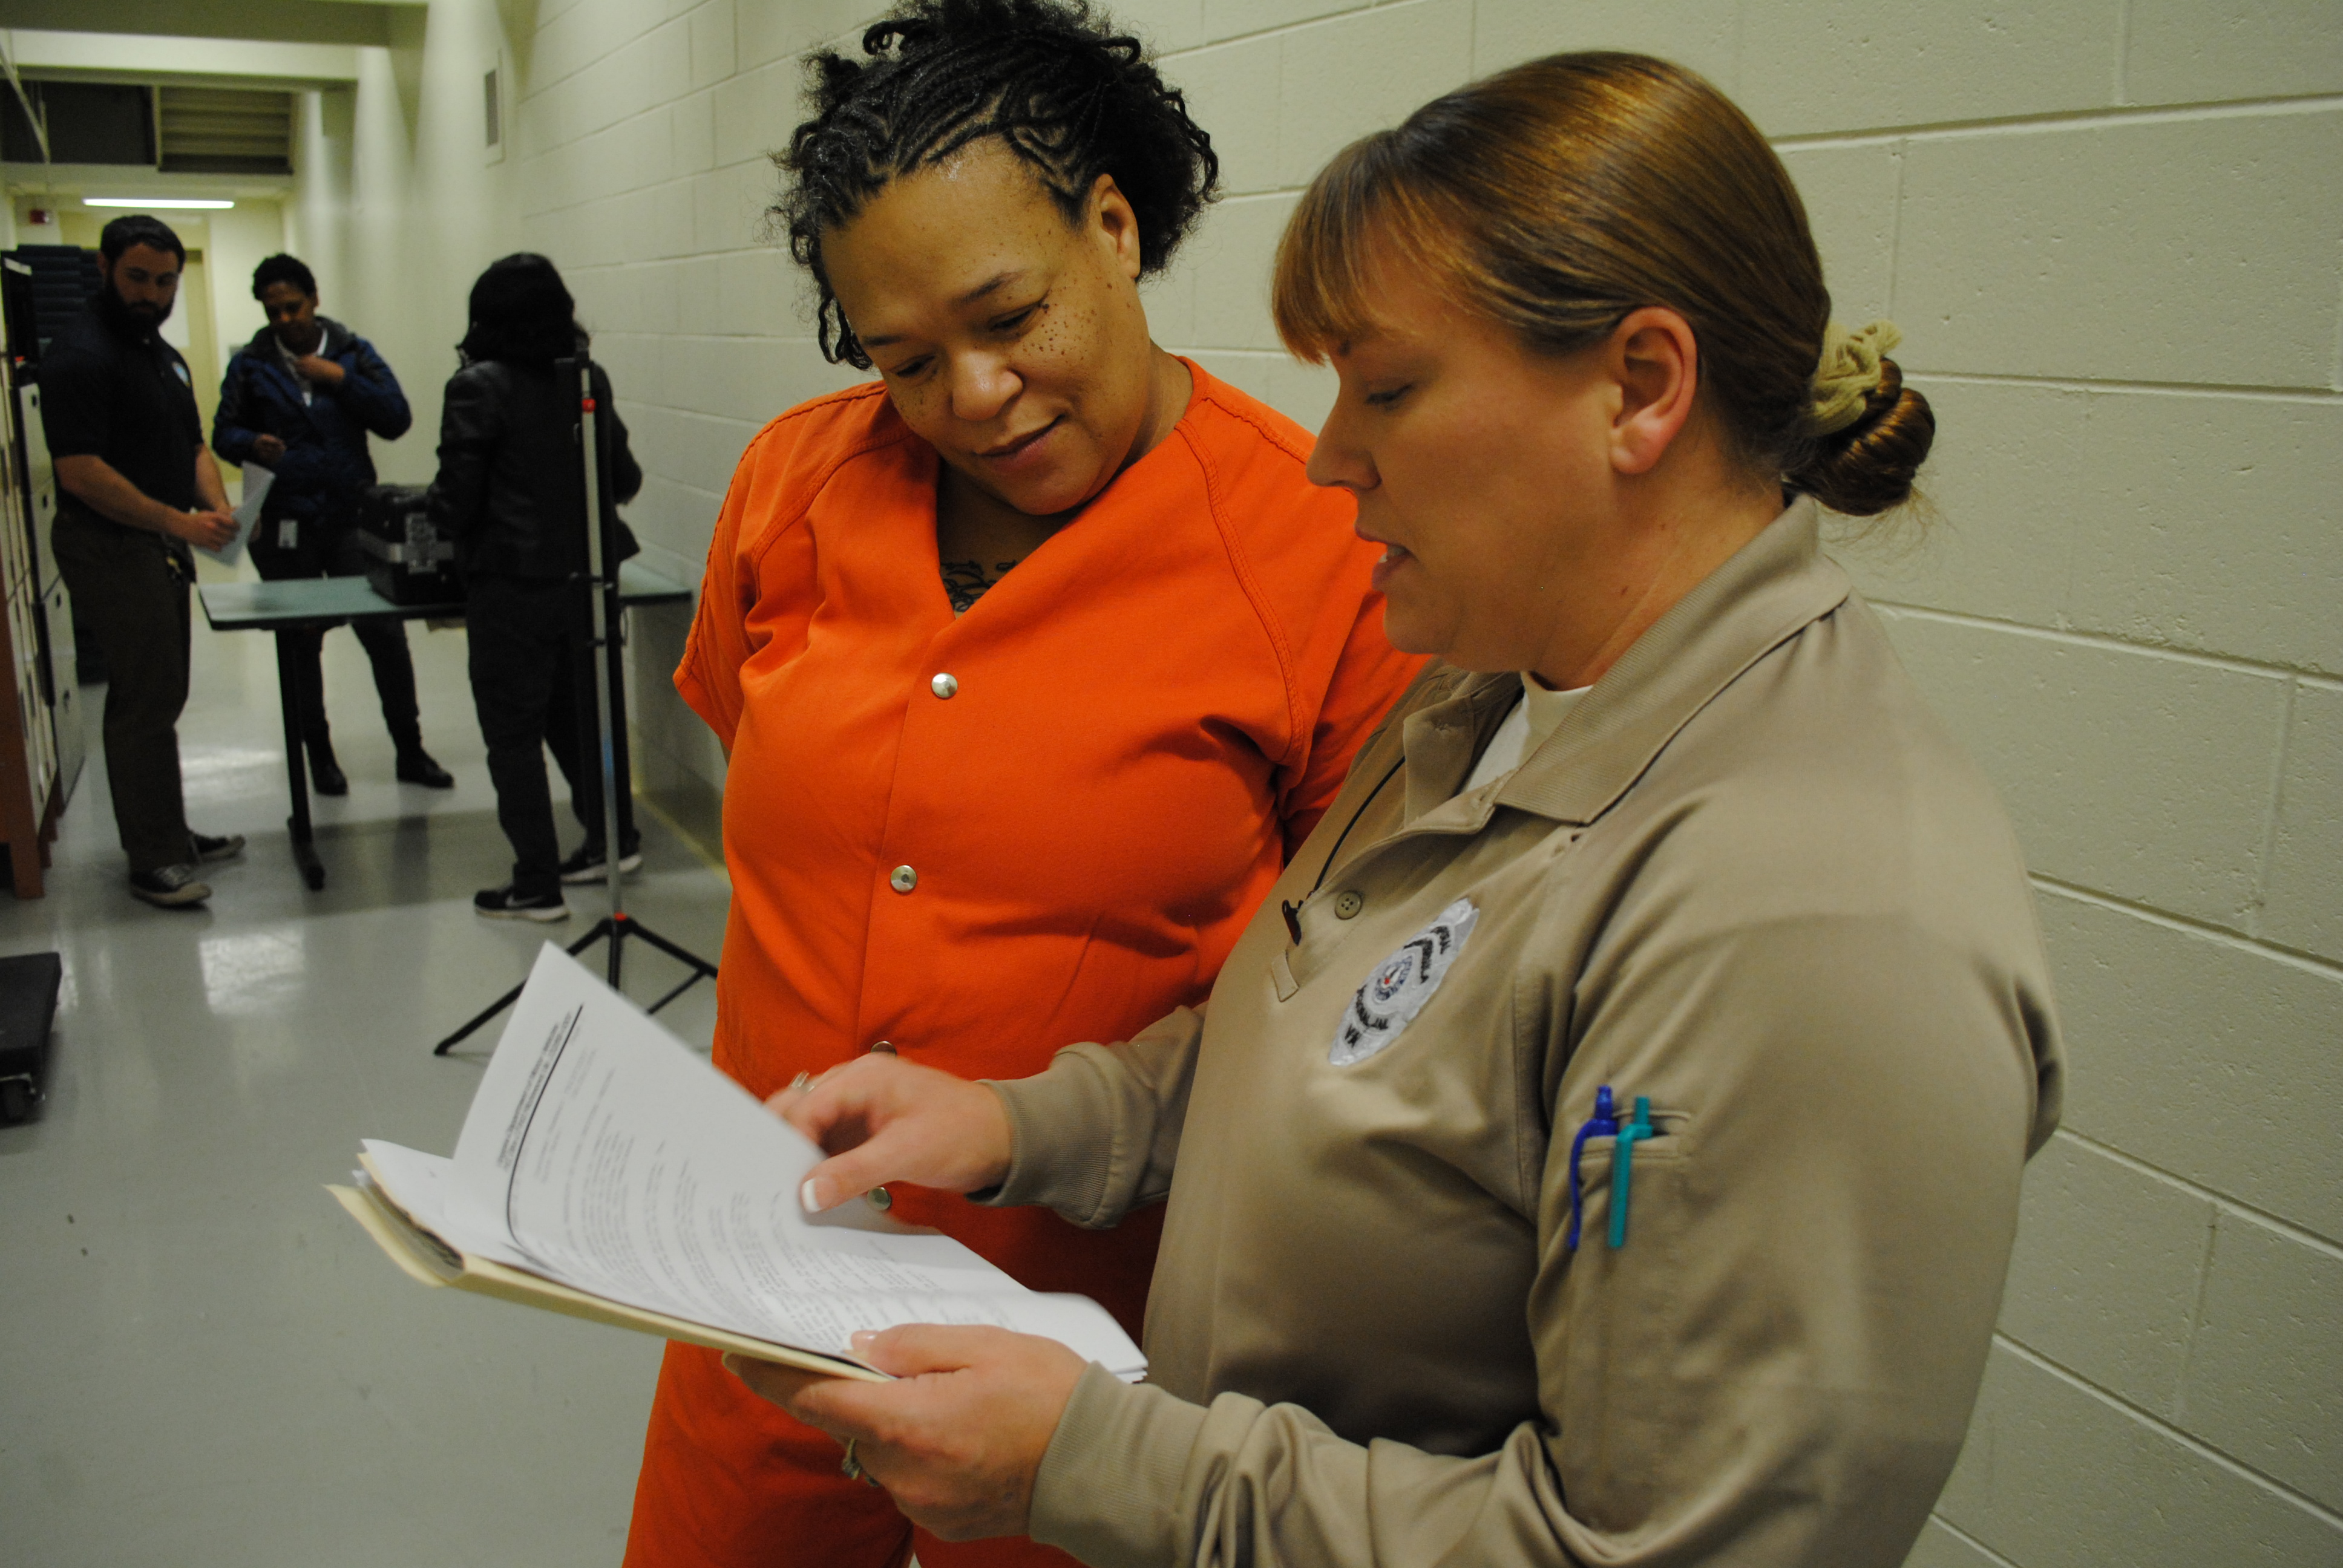 Crystal Stuckey goes over her compliance sheet with Cpl. Christina McCain. The sheet shows the steps Stuckey needs to take to reinstate her license. (Sarah Fearing/WYDaily)